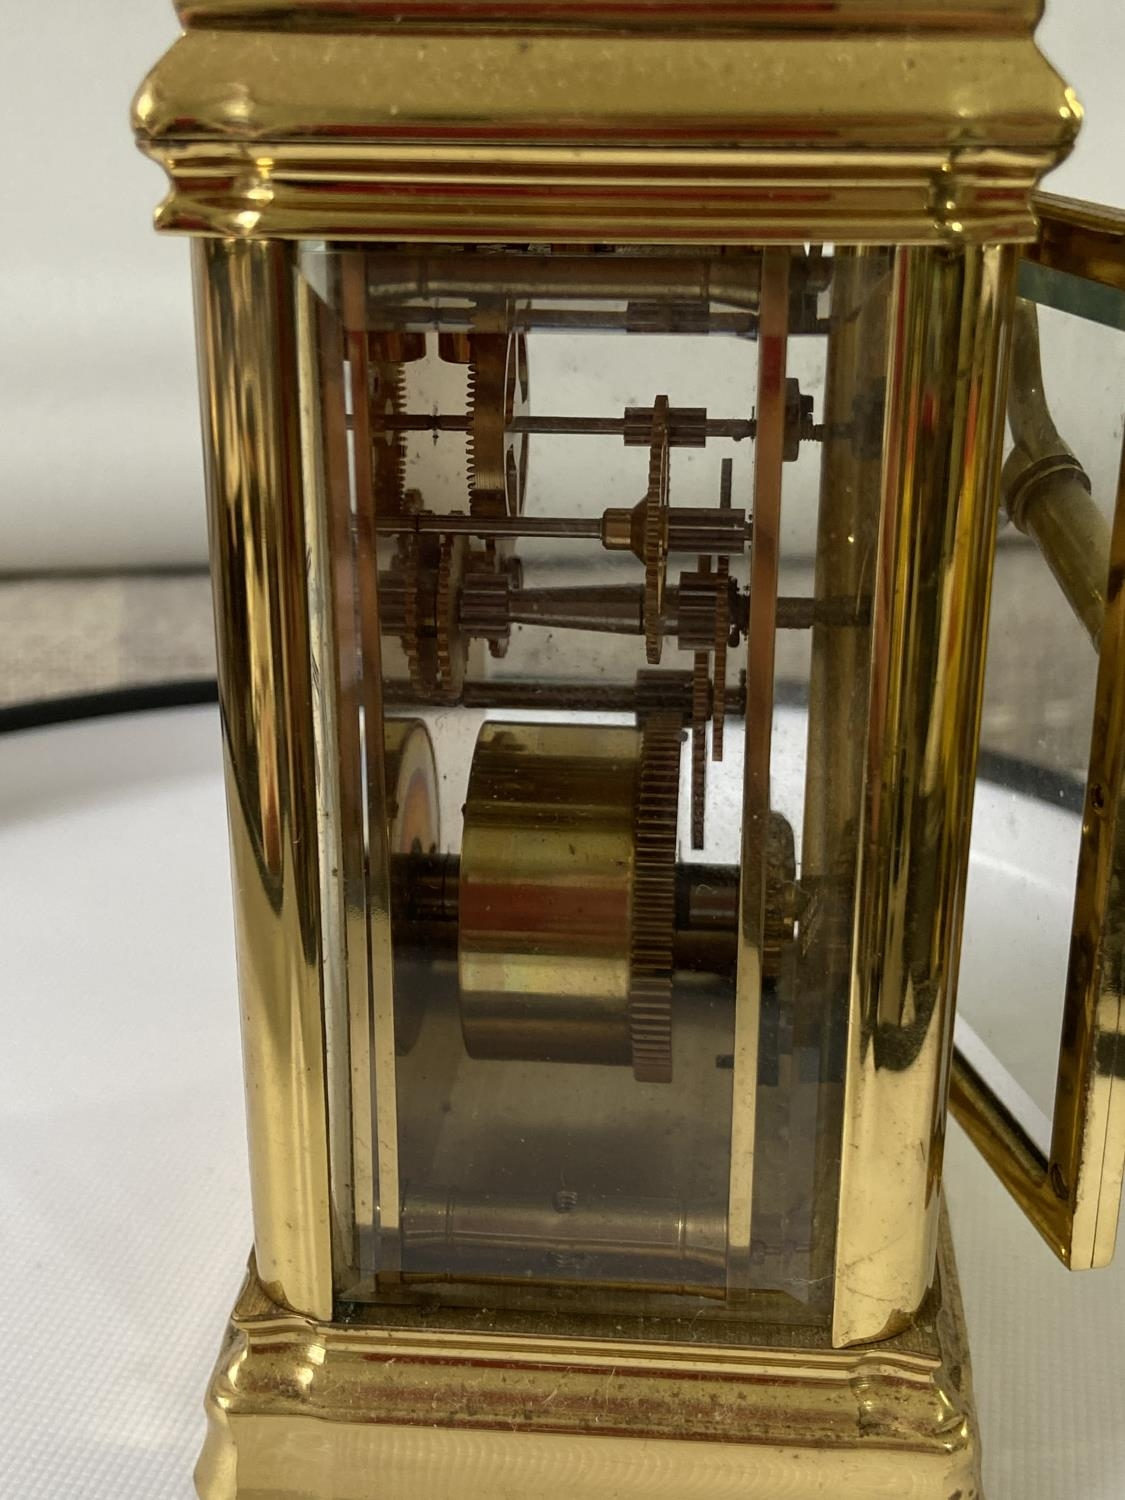 Antique heavy brass carriage clock [Rapport London] [MVT No 1800] in a working condition and with - Image 10 of 12